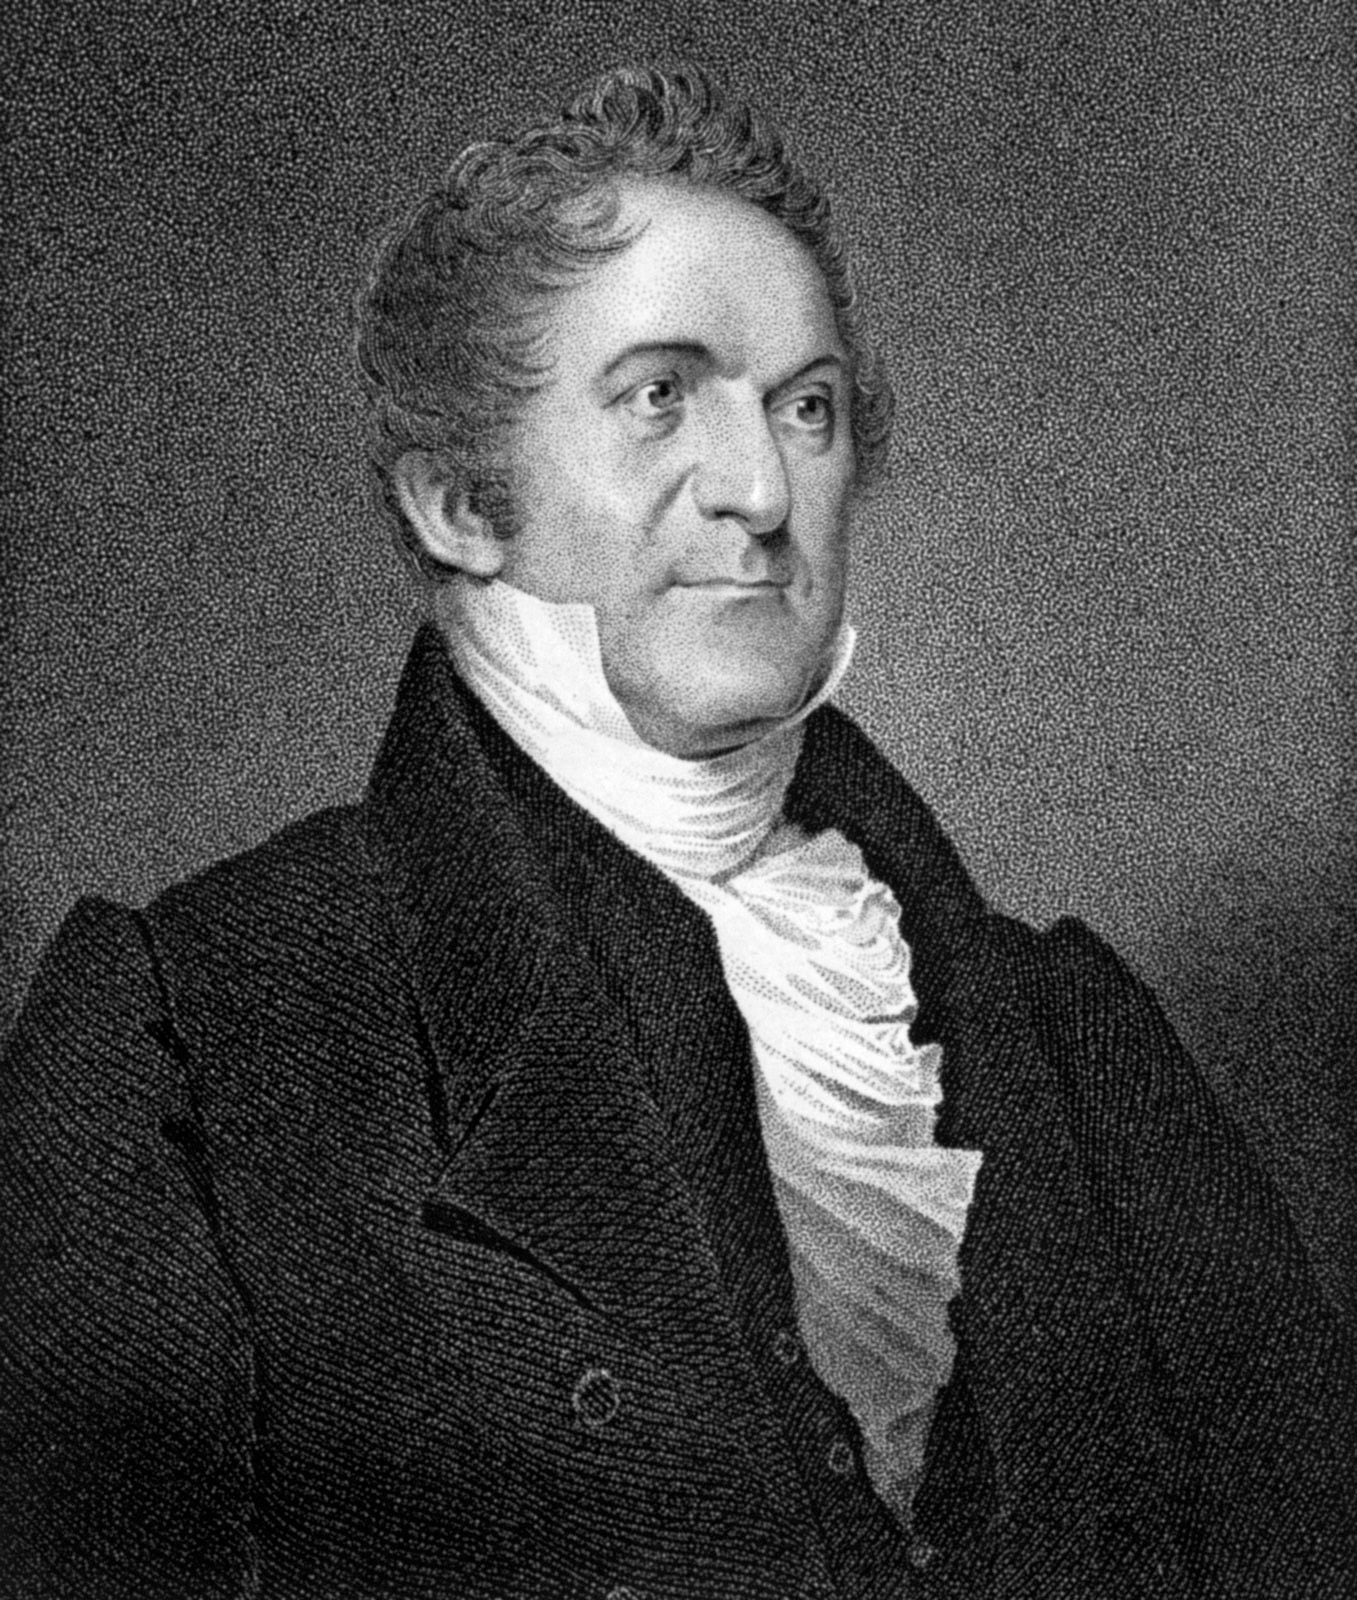 William Wirt, Former Freemason and Presidential Candidate for Anti-Masonic Party